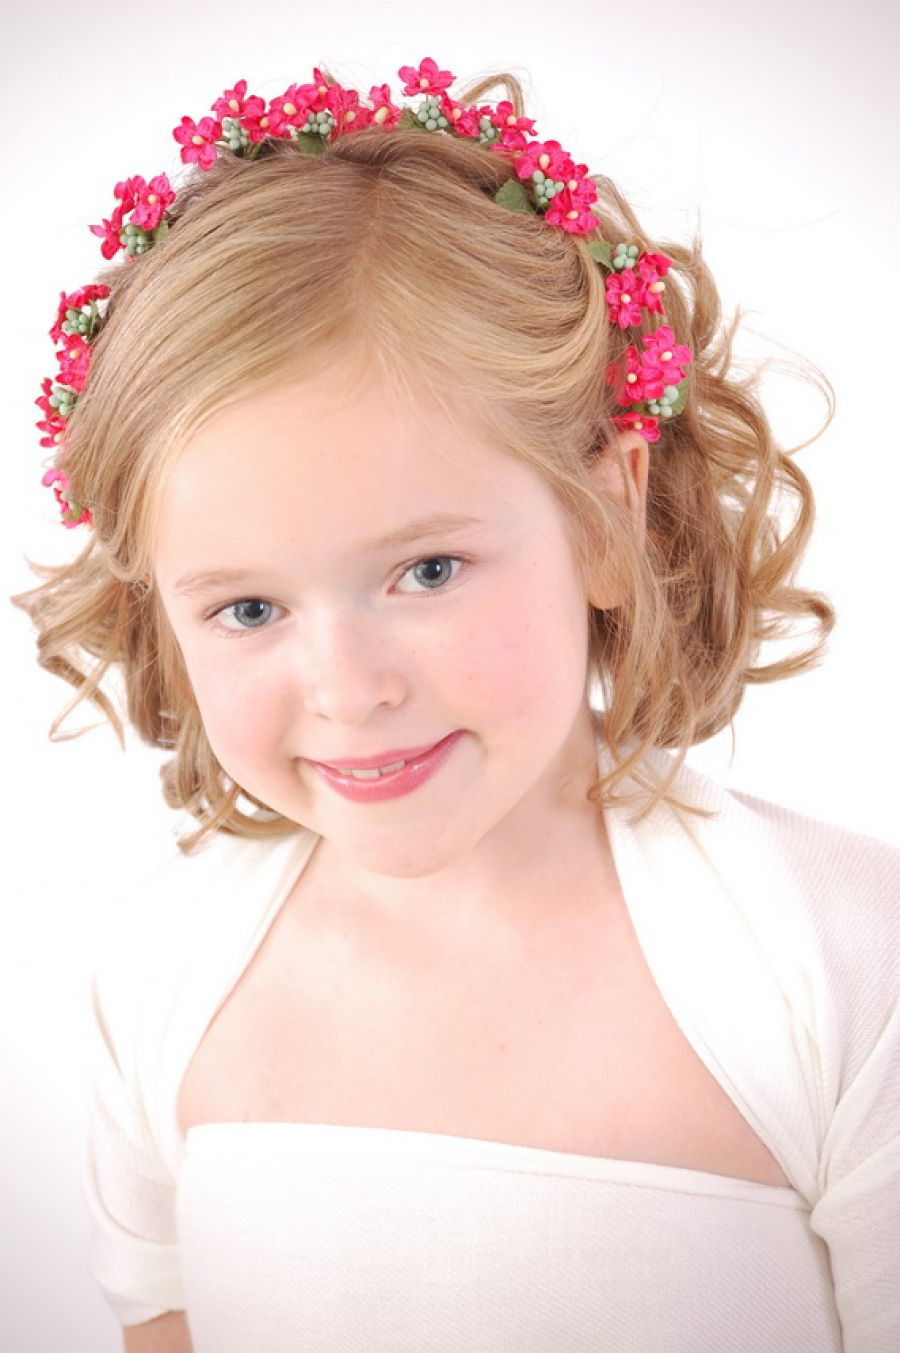 Best ideas about Little Girl Hairstyle . Save or Pin 20 Hairstyles for Kids with MagMent Now.